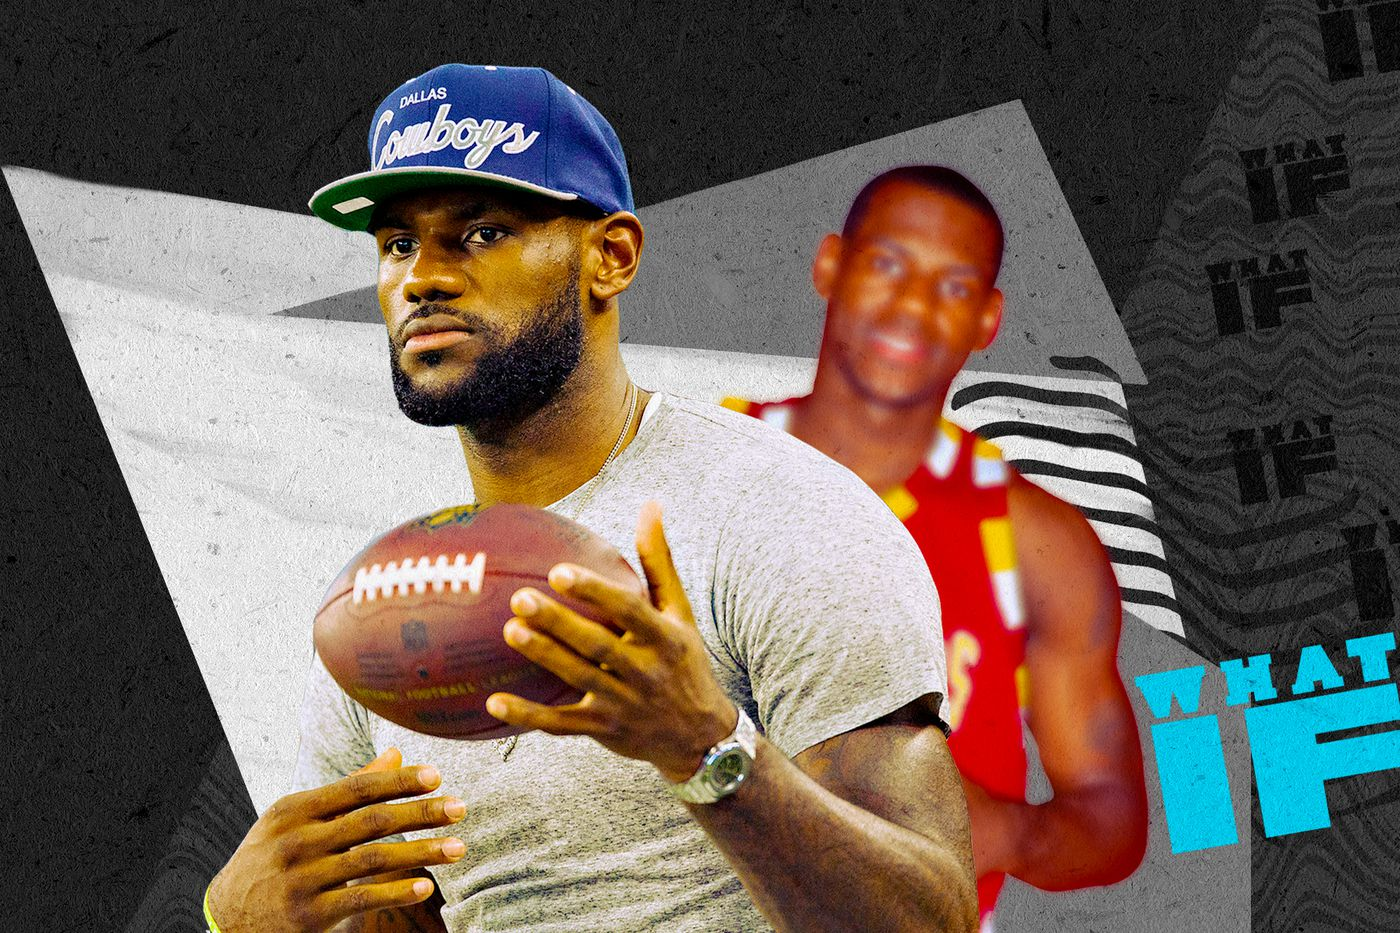 5a09001be LeBron James' alternate history as a football player, imagined by experts -  SBNation.com